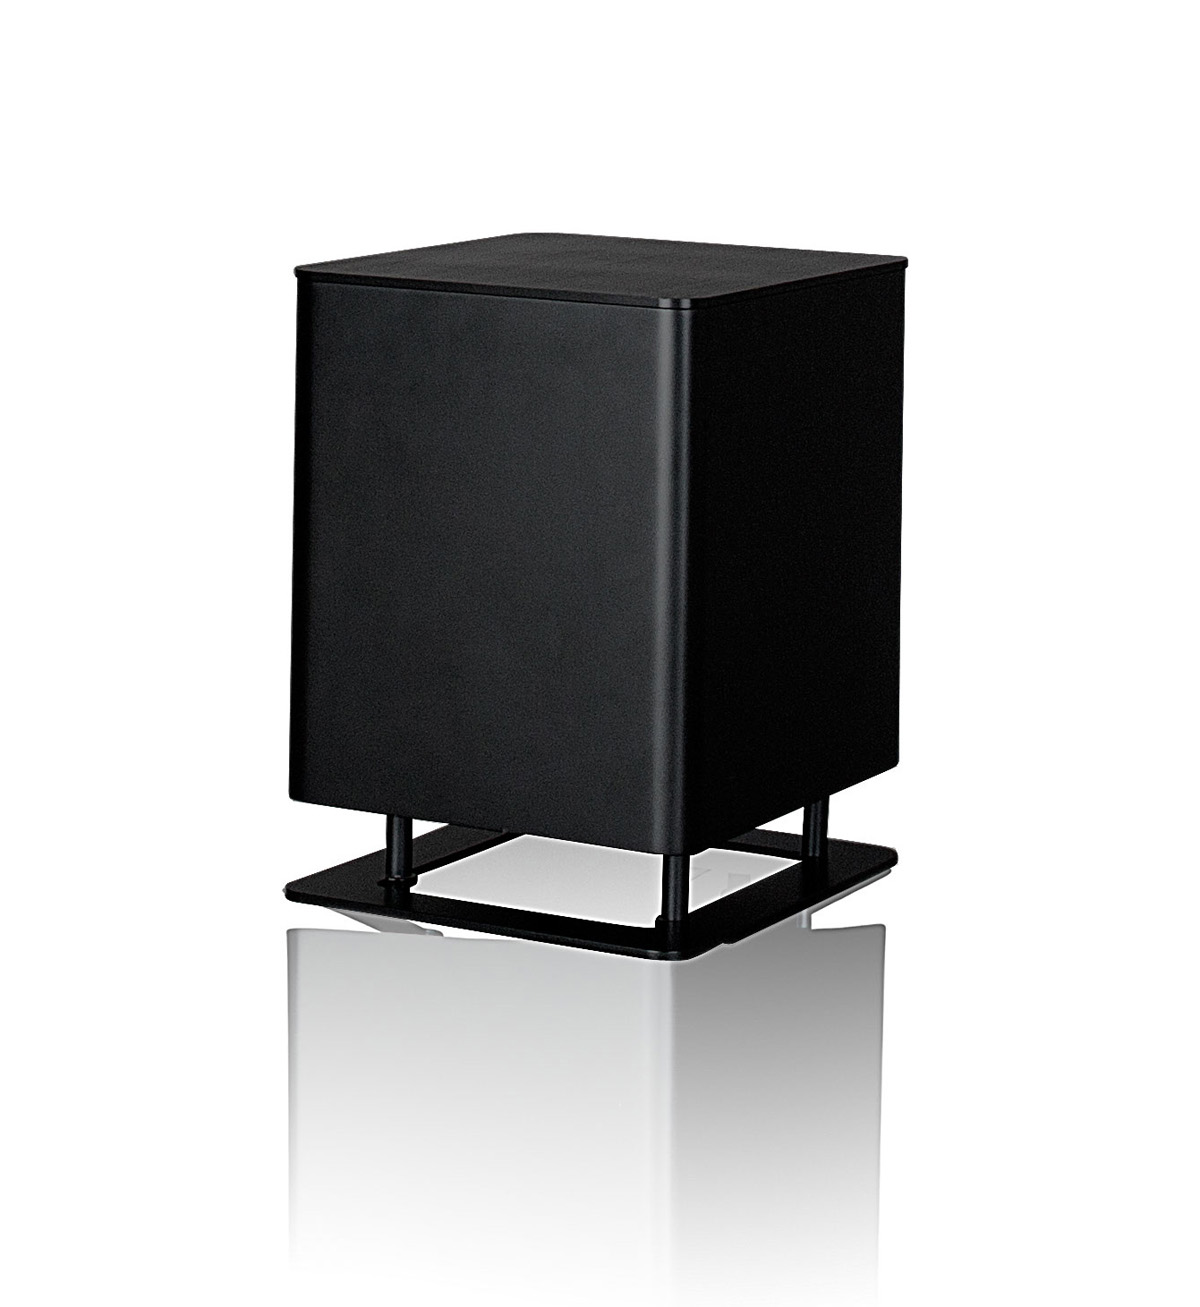 Piega T-Micro Aktive-Subwoofer black anodized